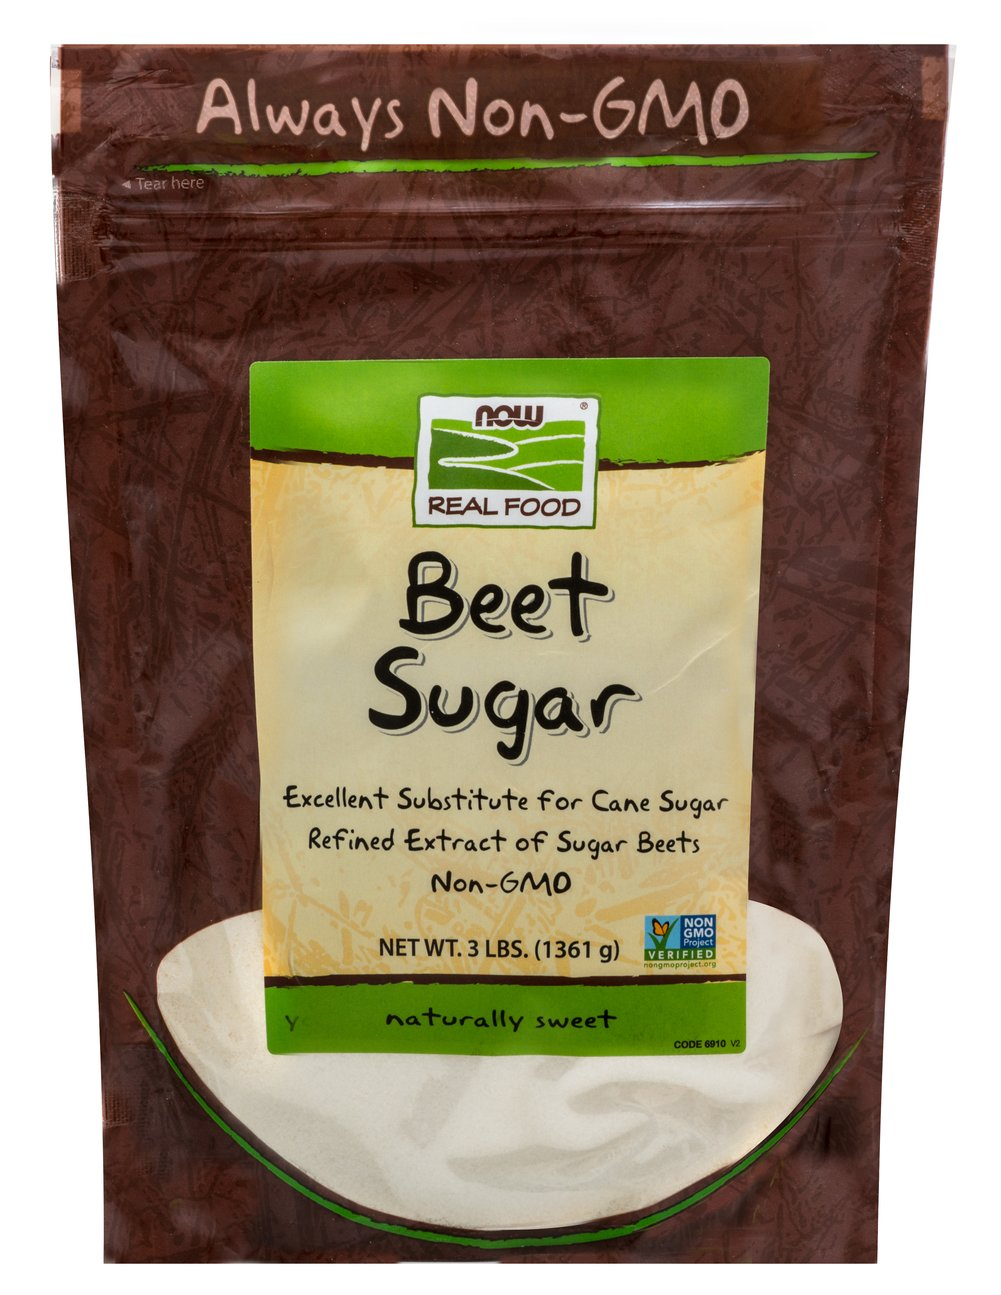 Beet Sugar <p><strong>From the Manufacturer's Label:</strong></p><p>NOW® Real Food™ Beet Sugar is the refined extract of sugar beets and is 99.9% sucrose, making it an ideal substitute for cane sugar in most recipes. Persons with intolerance to refined cane sugar will find beet sugar to be a worthy replacement. 100% pure, natural Beet Sugar with no added ingredients.</p> 3 lb Bag  $14.99